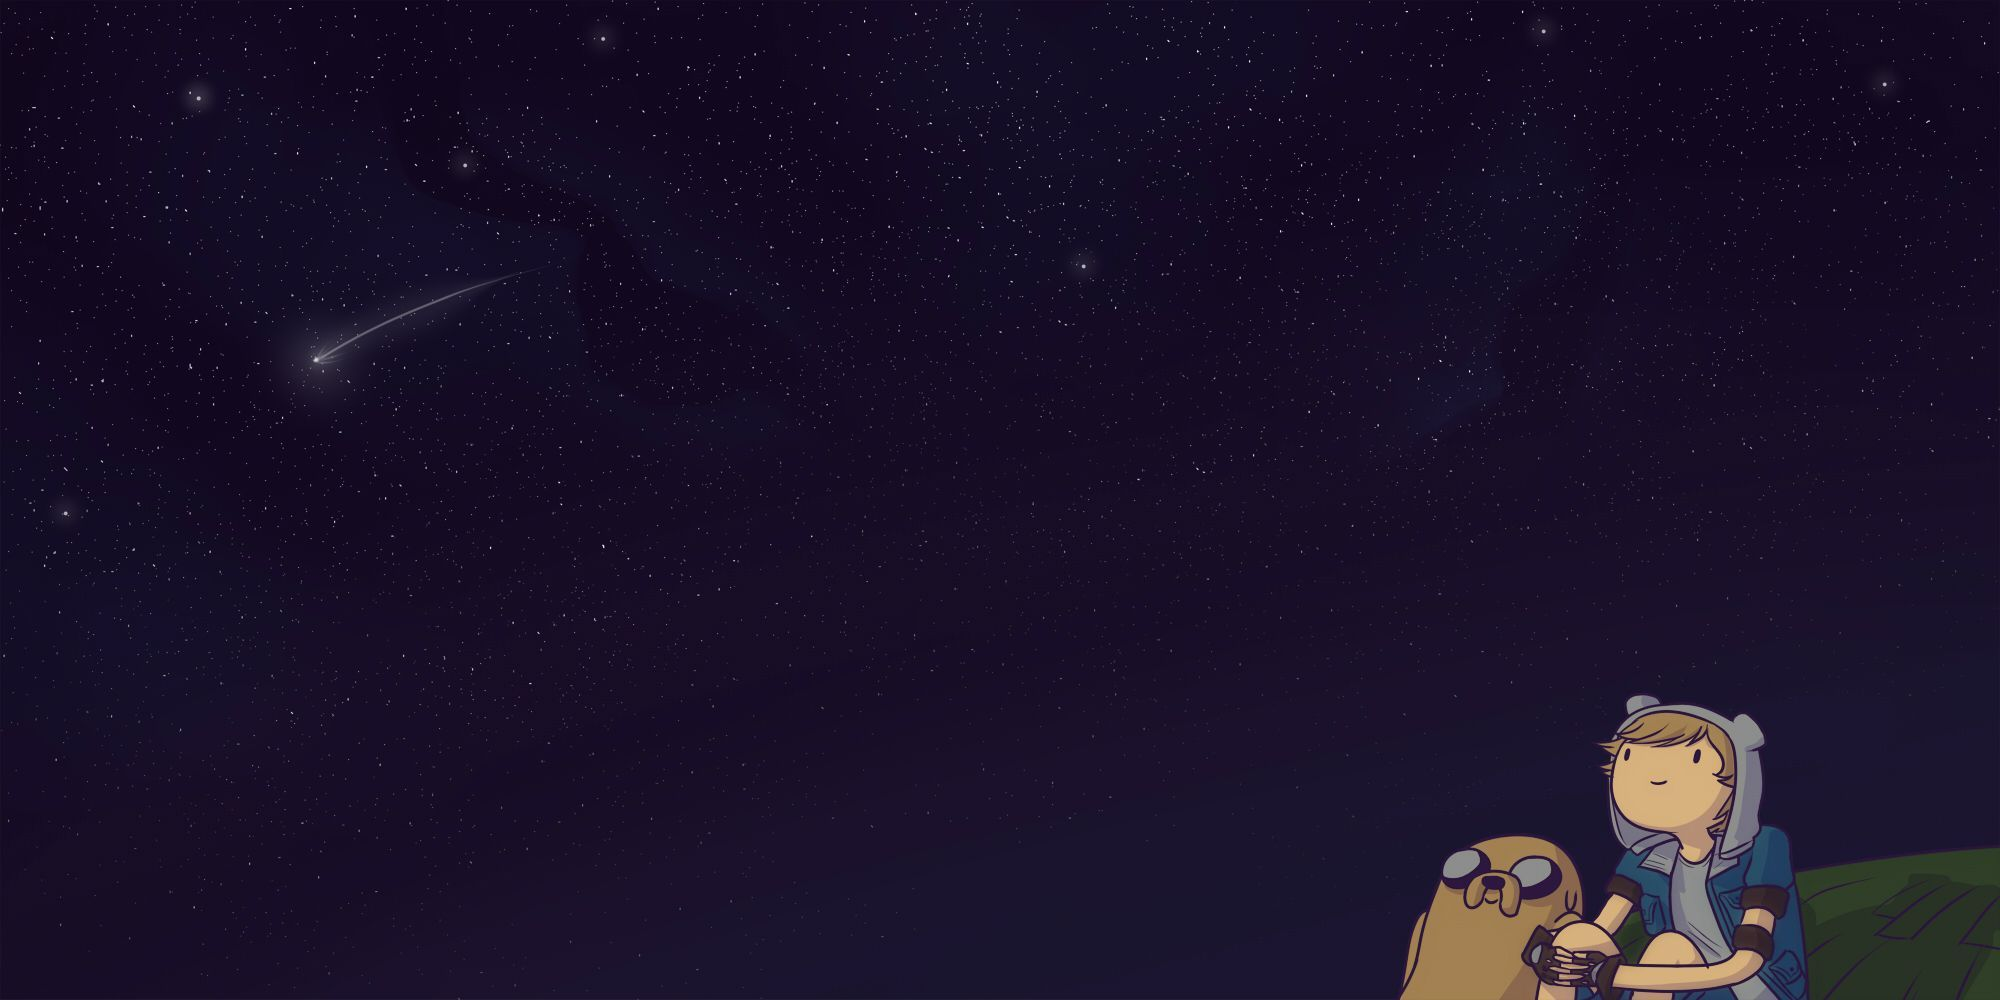 Pin By Tania R On Adventure Time Adventure Time Wallpaper Jake Adventure Time Adventure Time